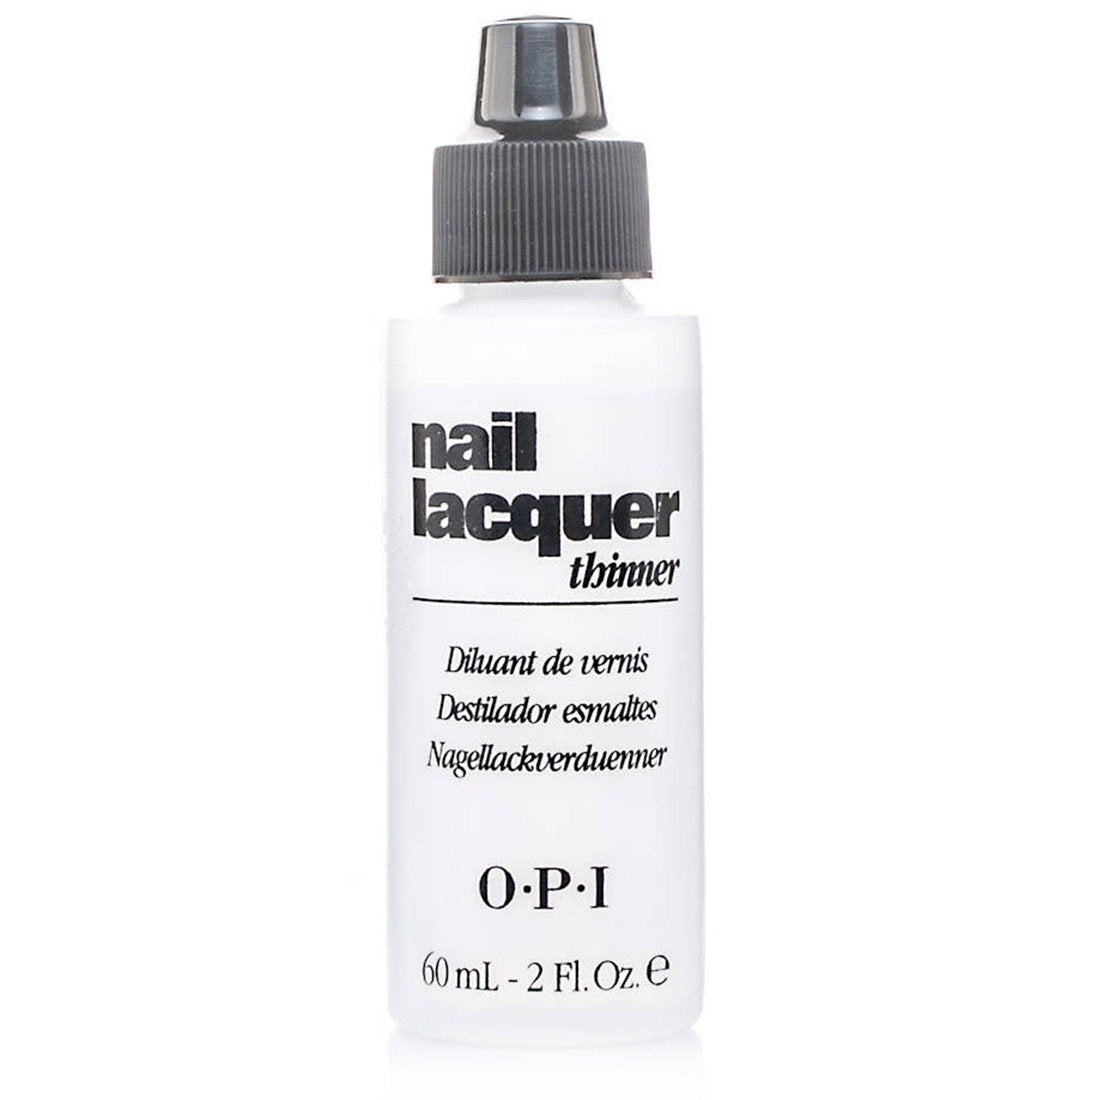 OPI - NAIL LACQUER THINNER - MyVaniteeCase